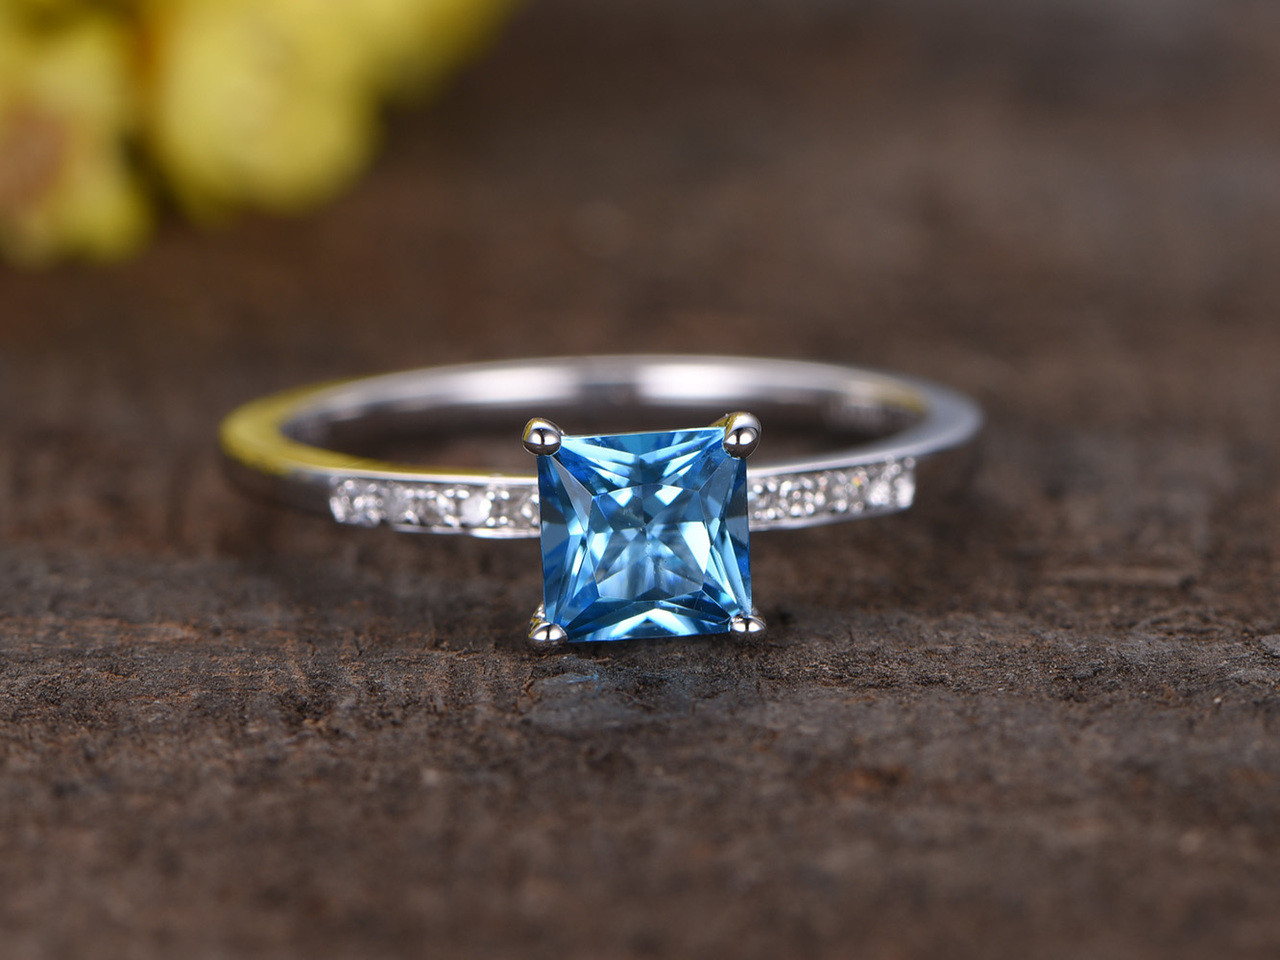 5mm Princes Cut Swiss Blue Topaz Engagement Ring With